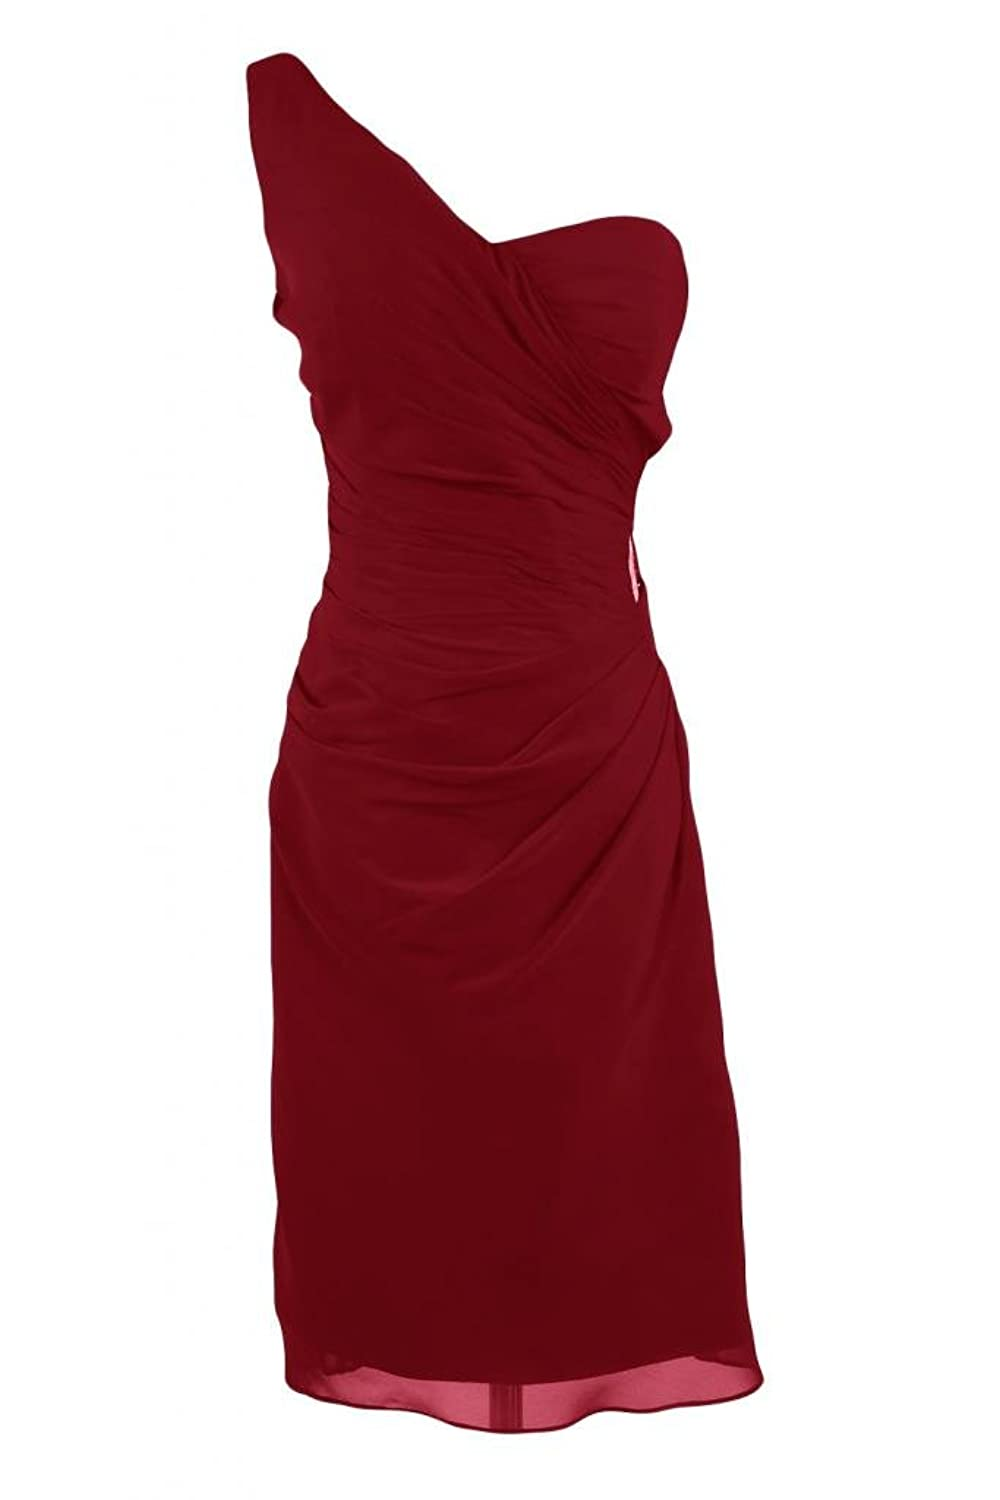 Sunvary Sexy Sheath Cocktail Party Dresses One-Shoulder Short Chiffon Homecoming Dresses